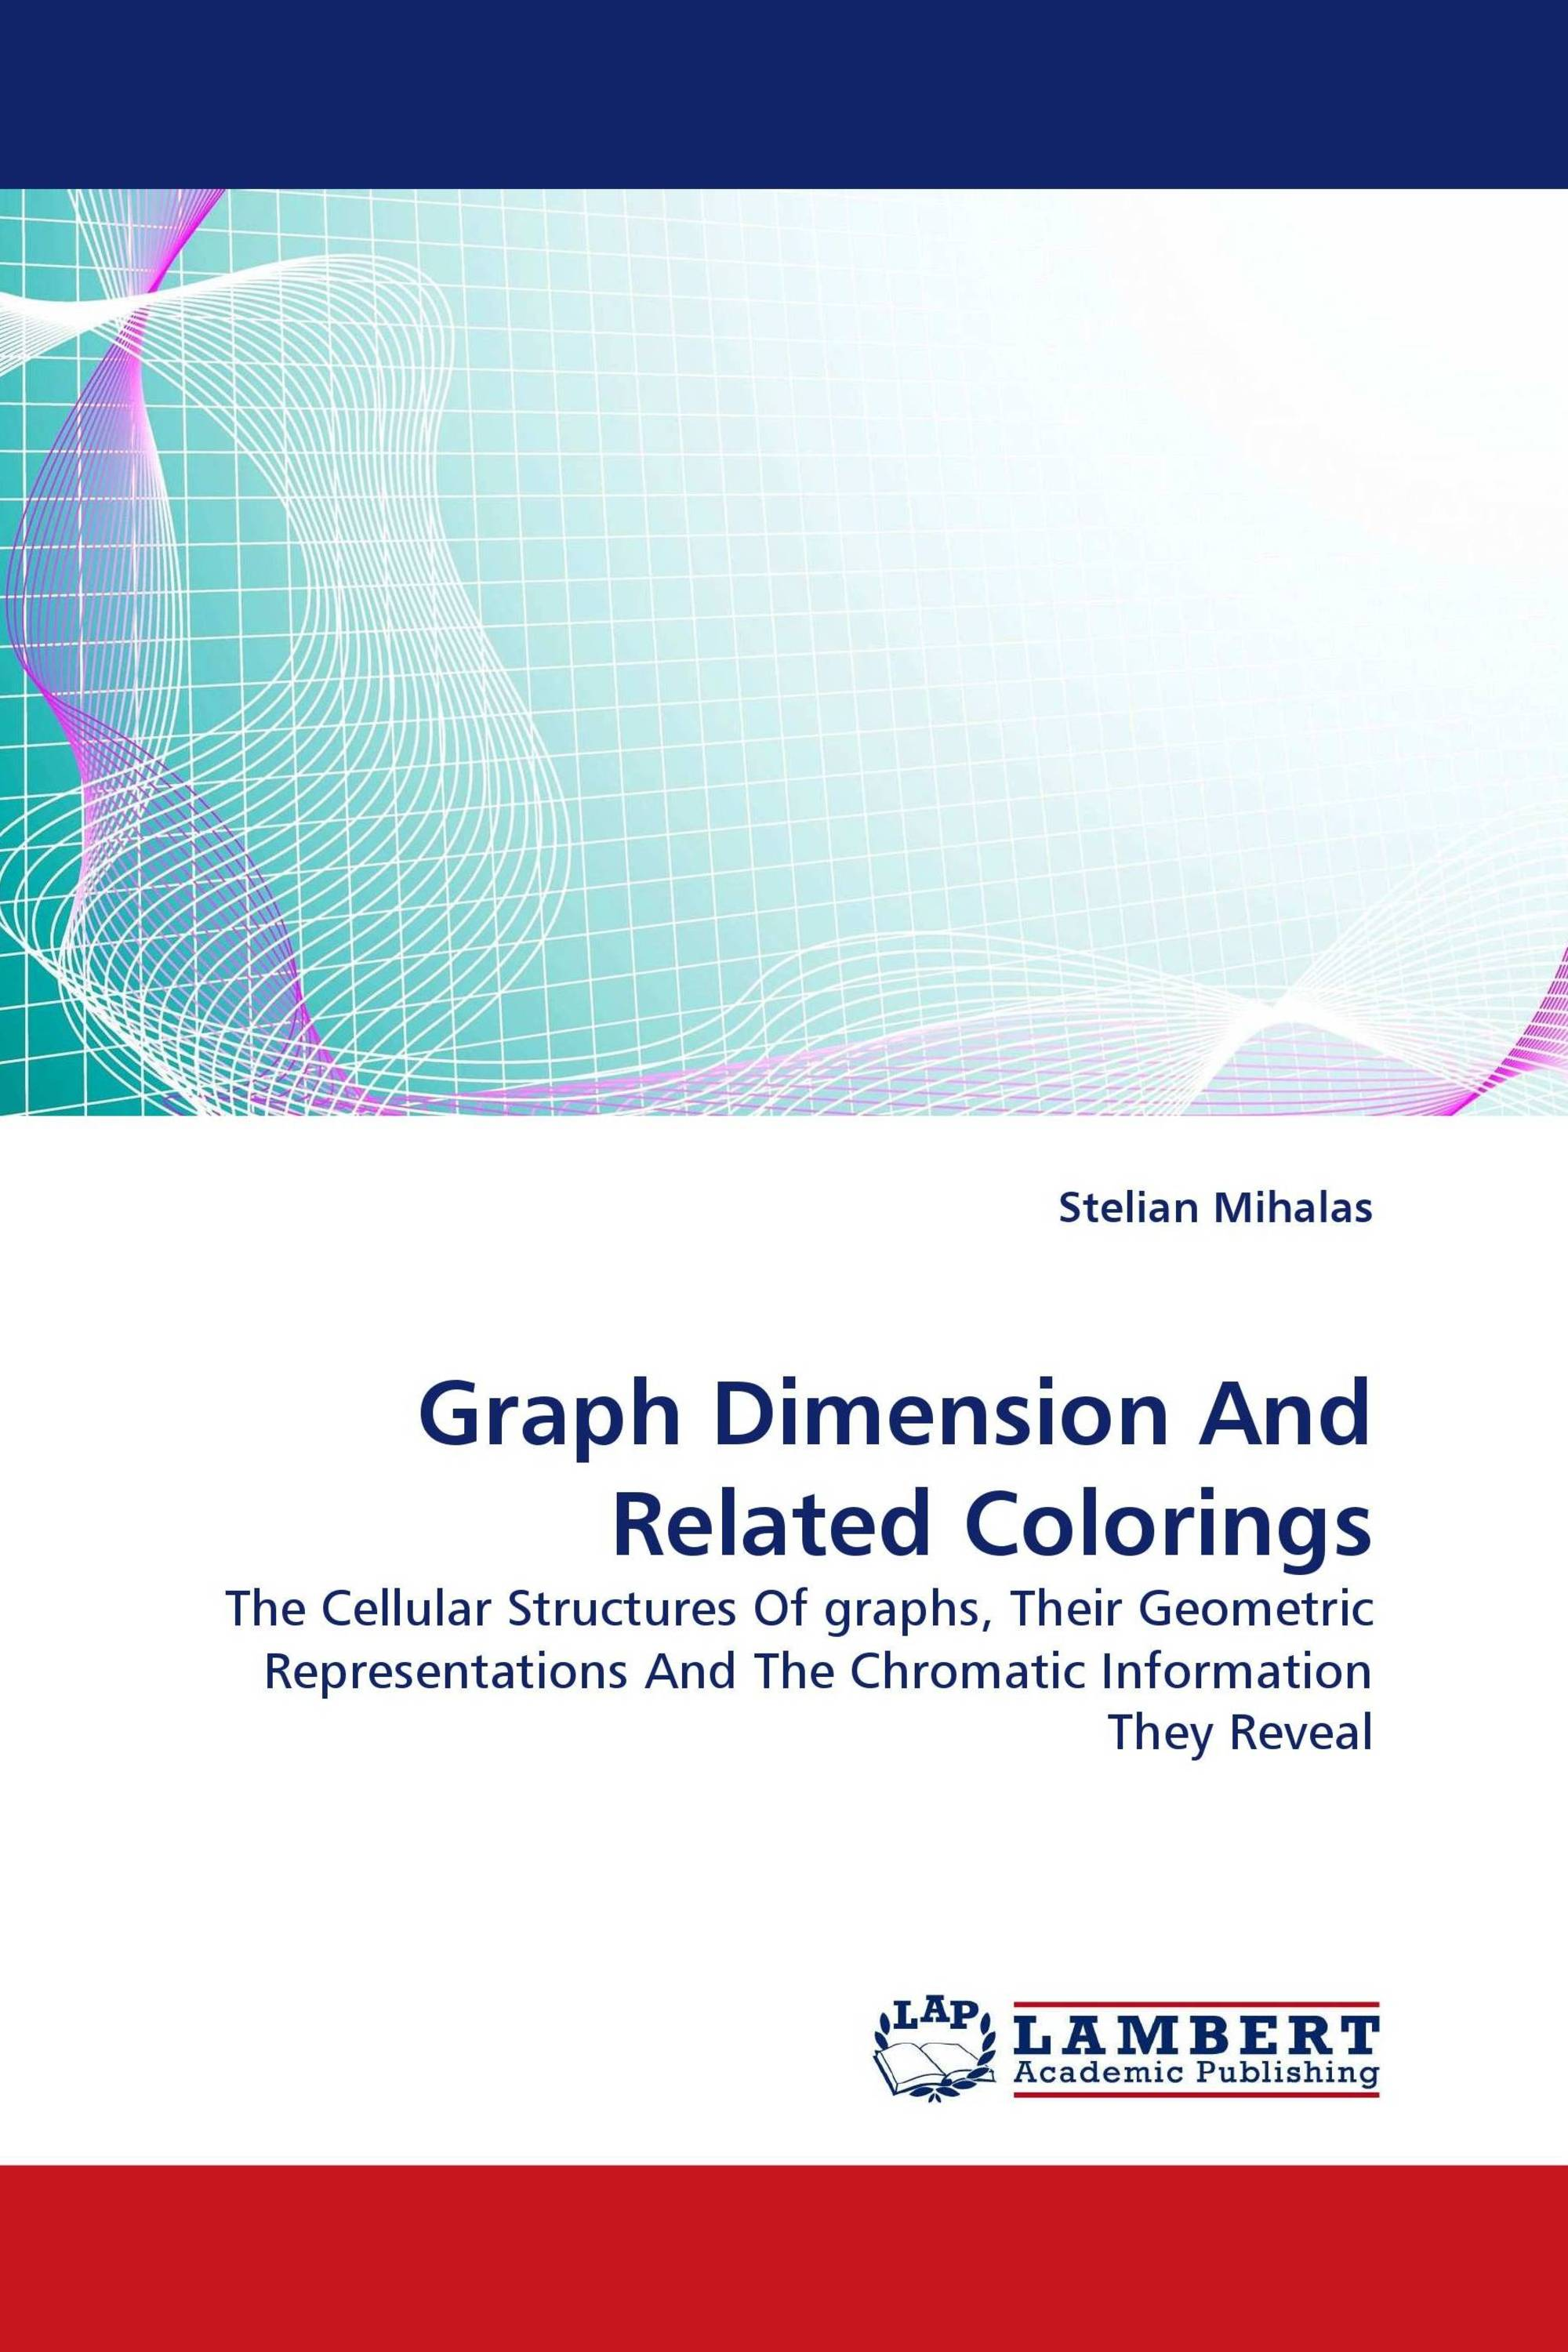 Graph Dimension And Related Colorings